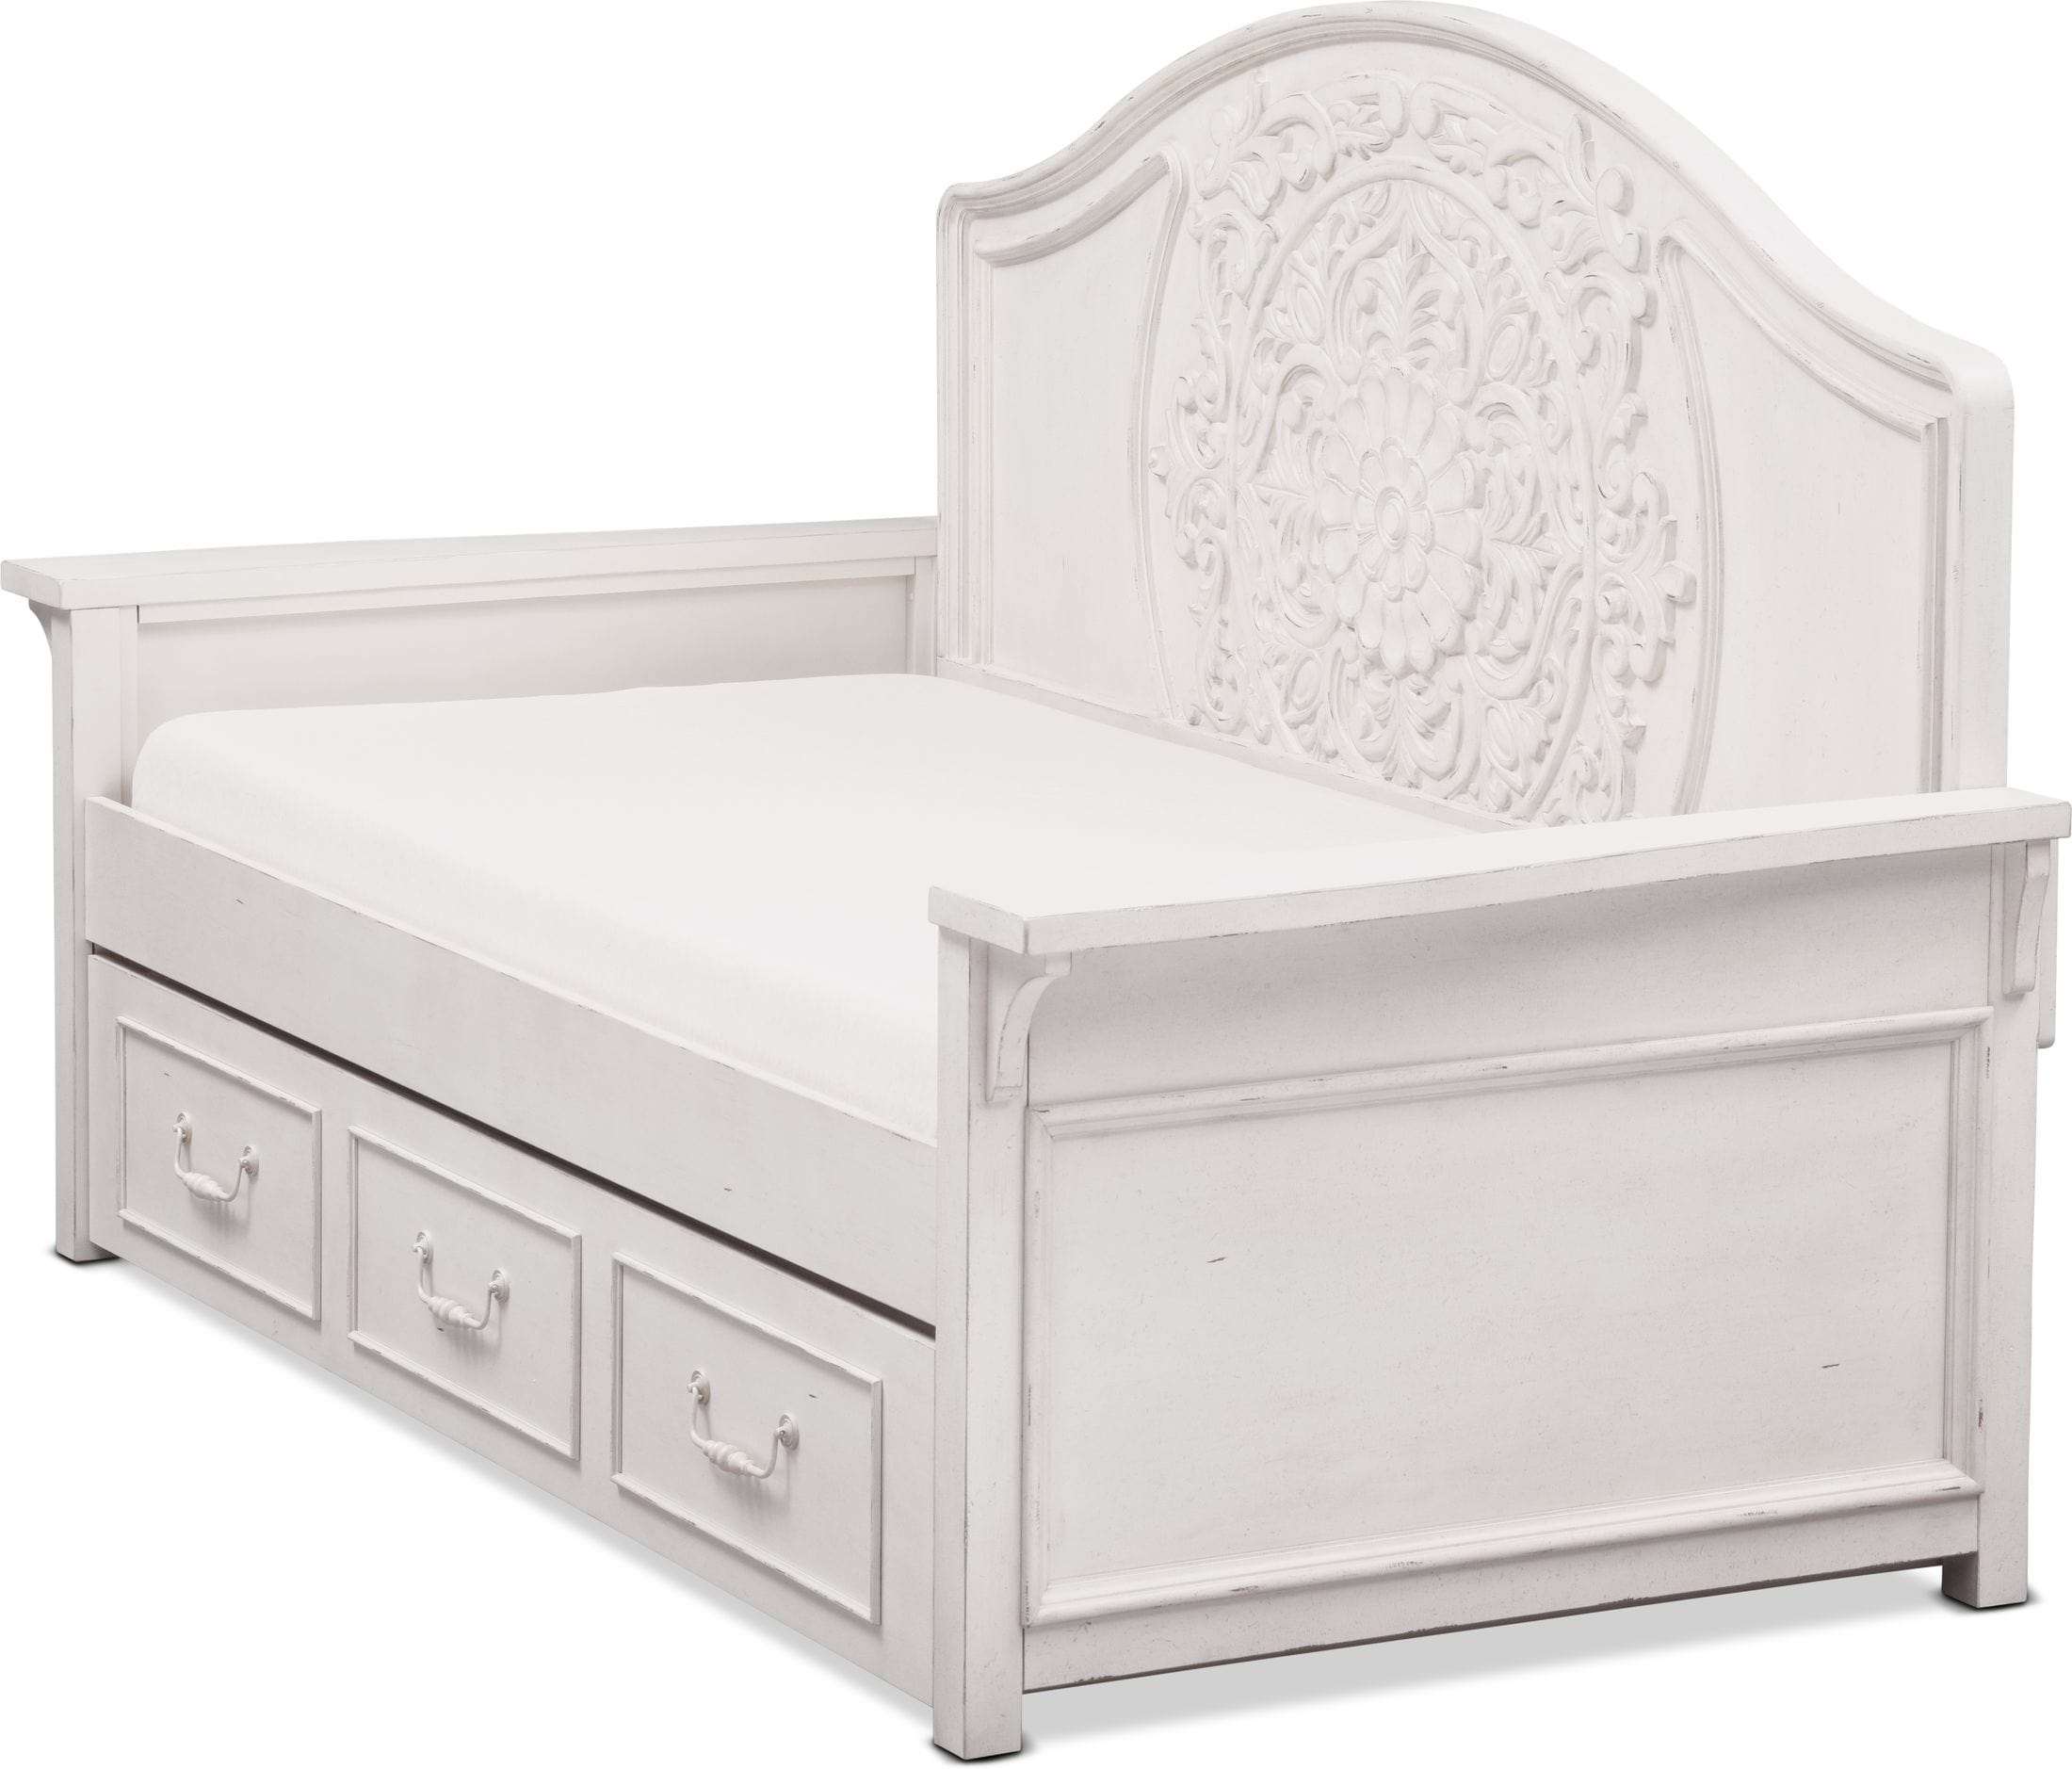 Bedroom Furniture - Florence Twin Trundle Daybed